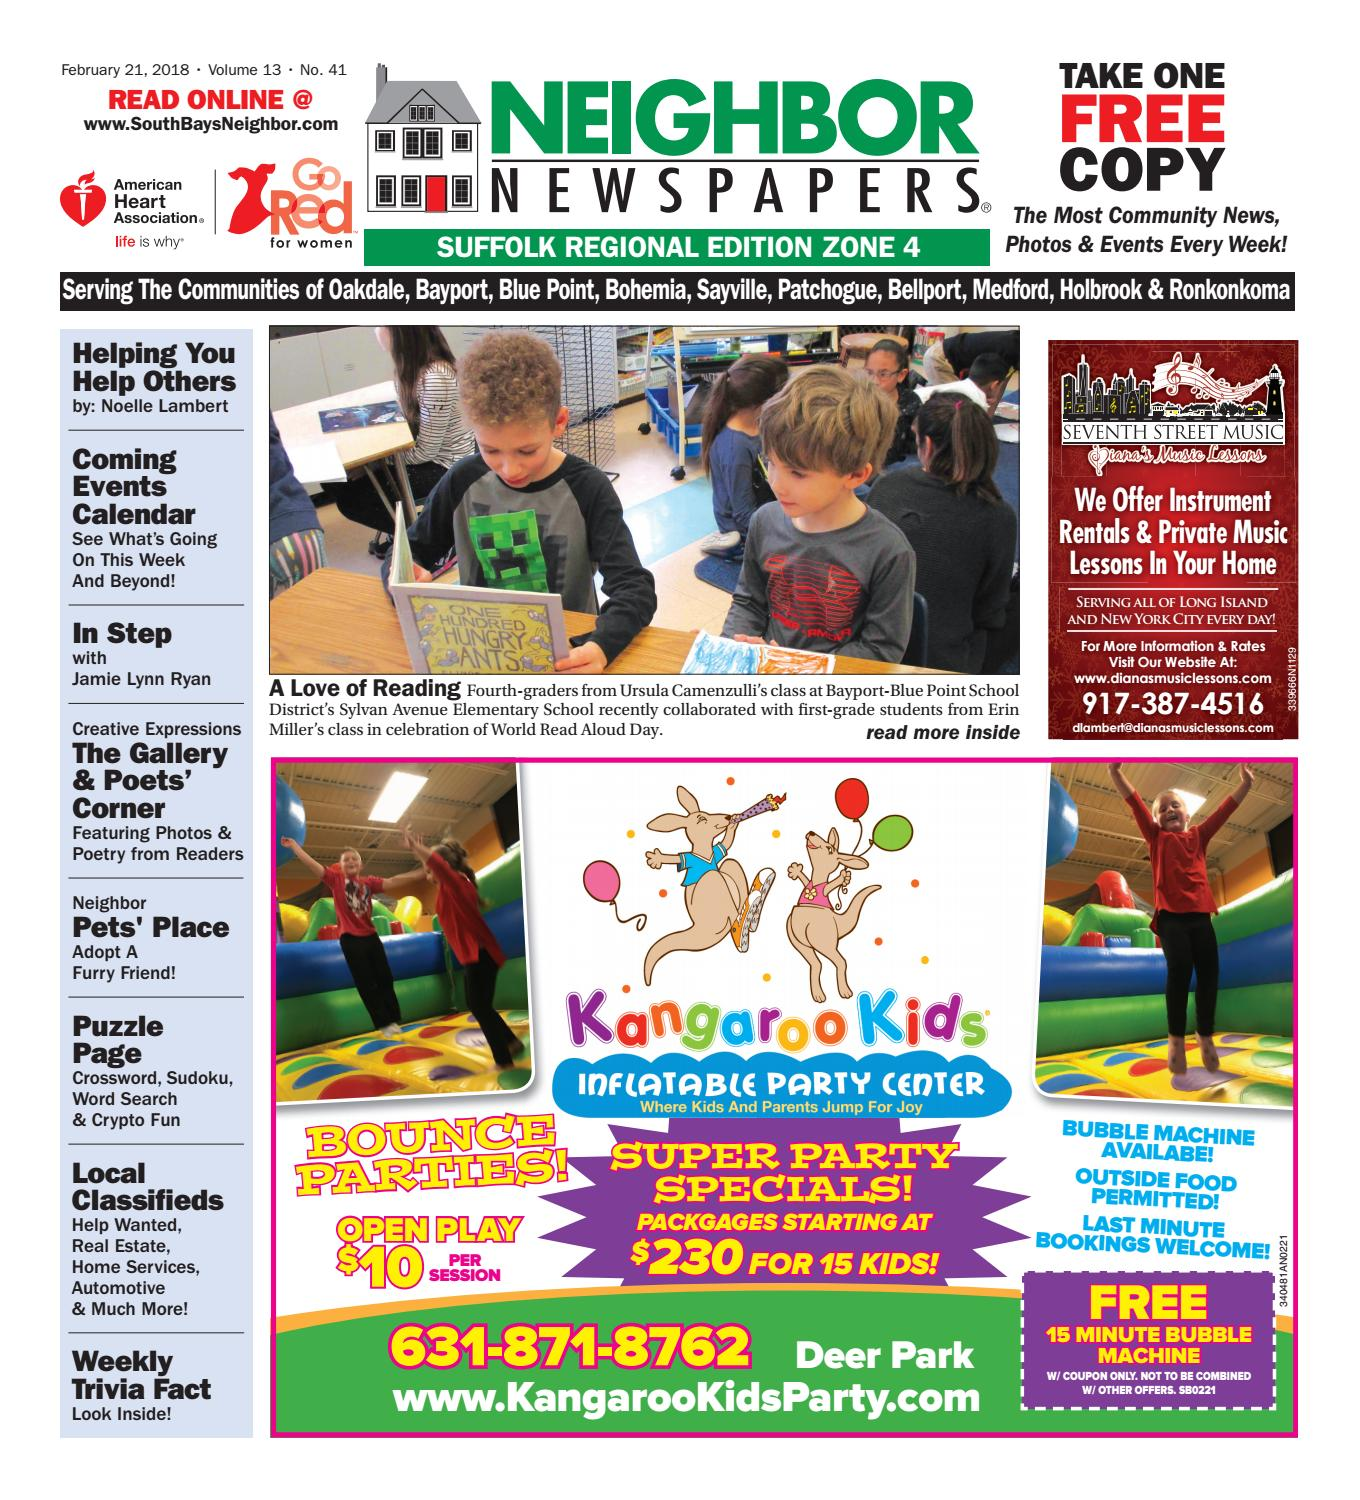 February 21st, 2018 Suffolk Zone 4 by South Bay's Neighbor